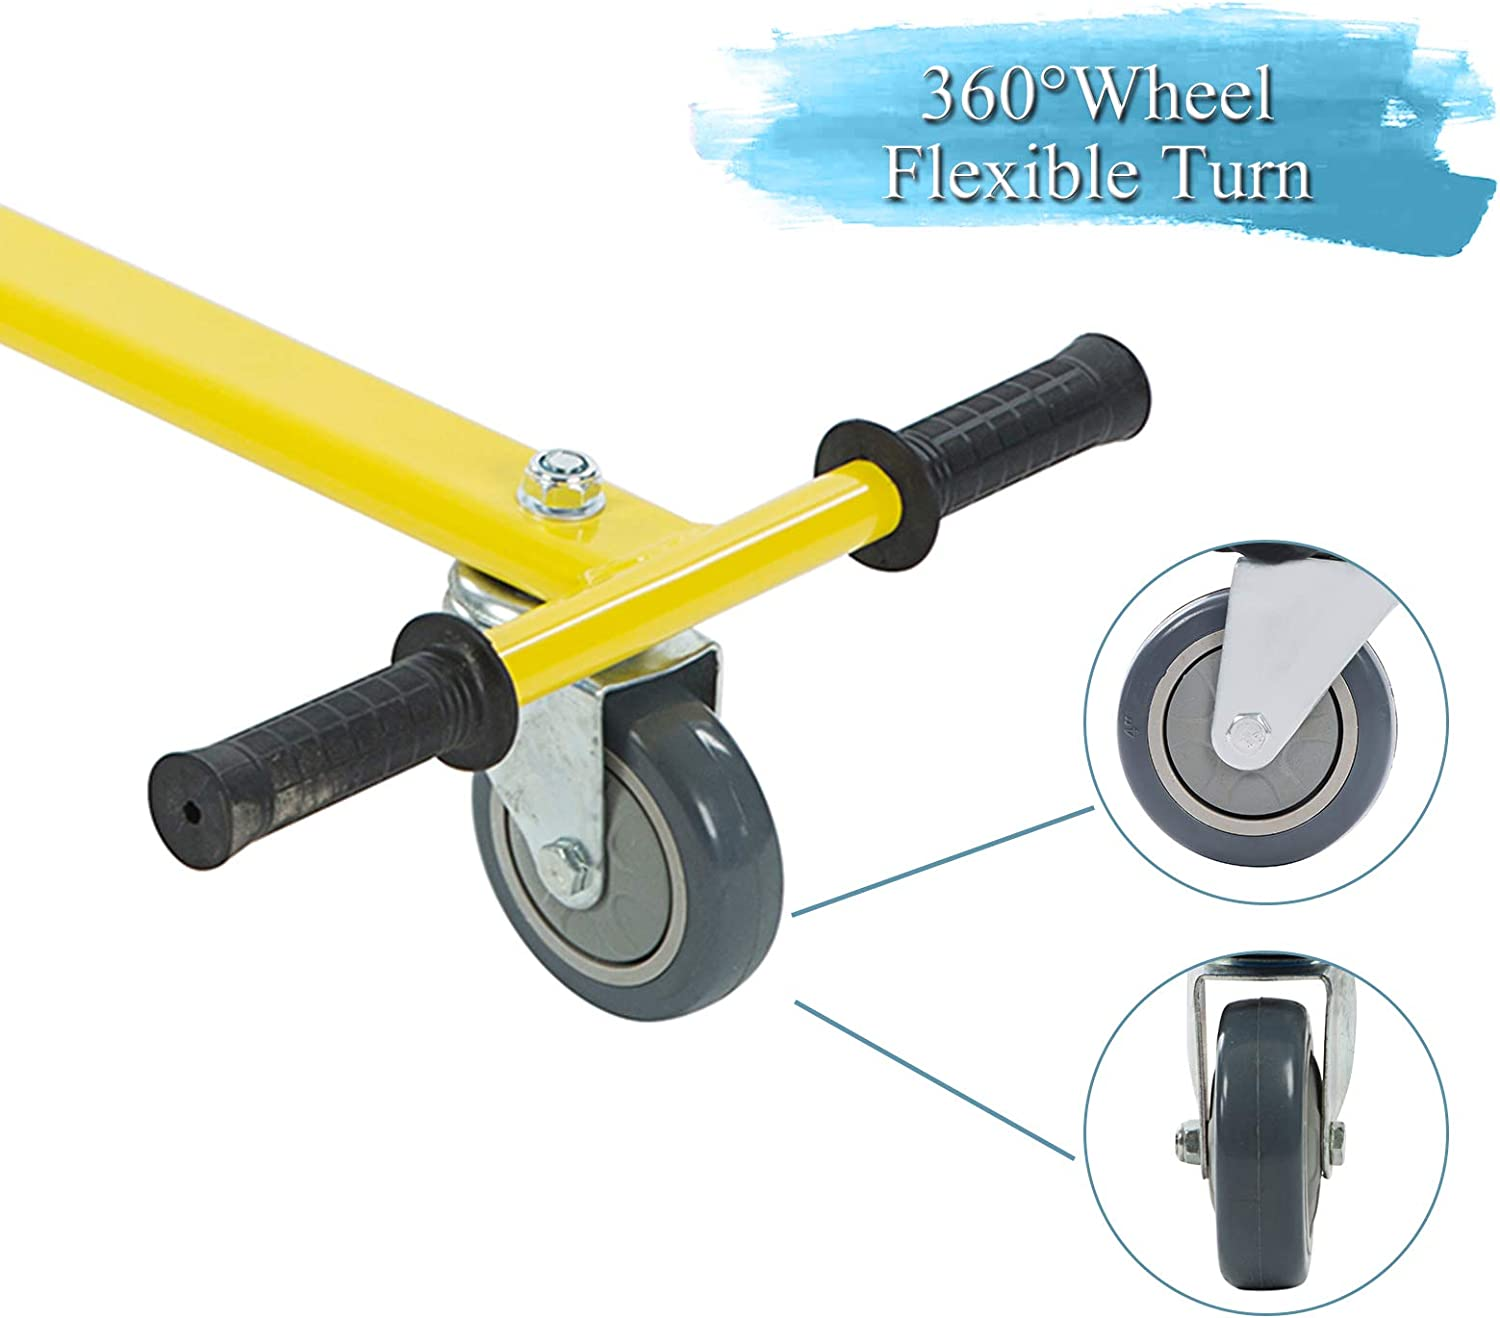 SMAGREHO Hoverboard Kart Seat Attachment Accessory for 6.5 8 10inch Two Wheel Balancing Scooter Suitable for Kids /& Adults